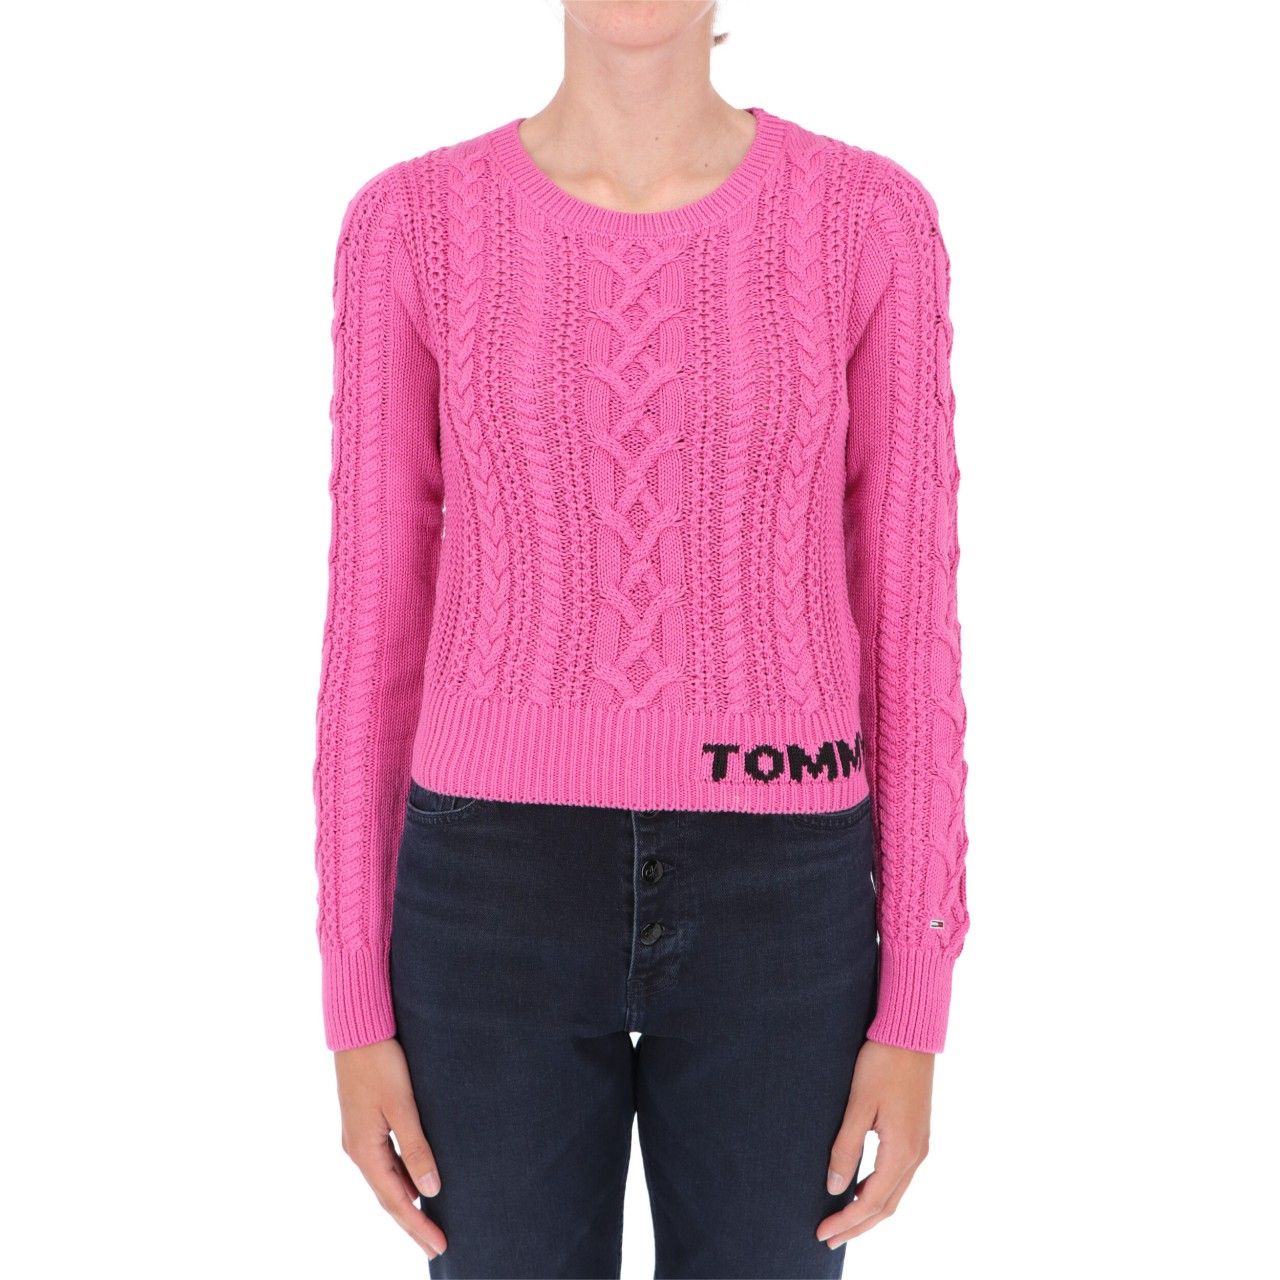 Tommy hilfiger Donna Maglia Tommy Hilfiger Jeans Donna Cable Sweater 11004Q